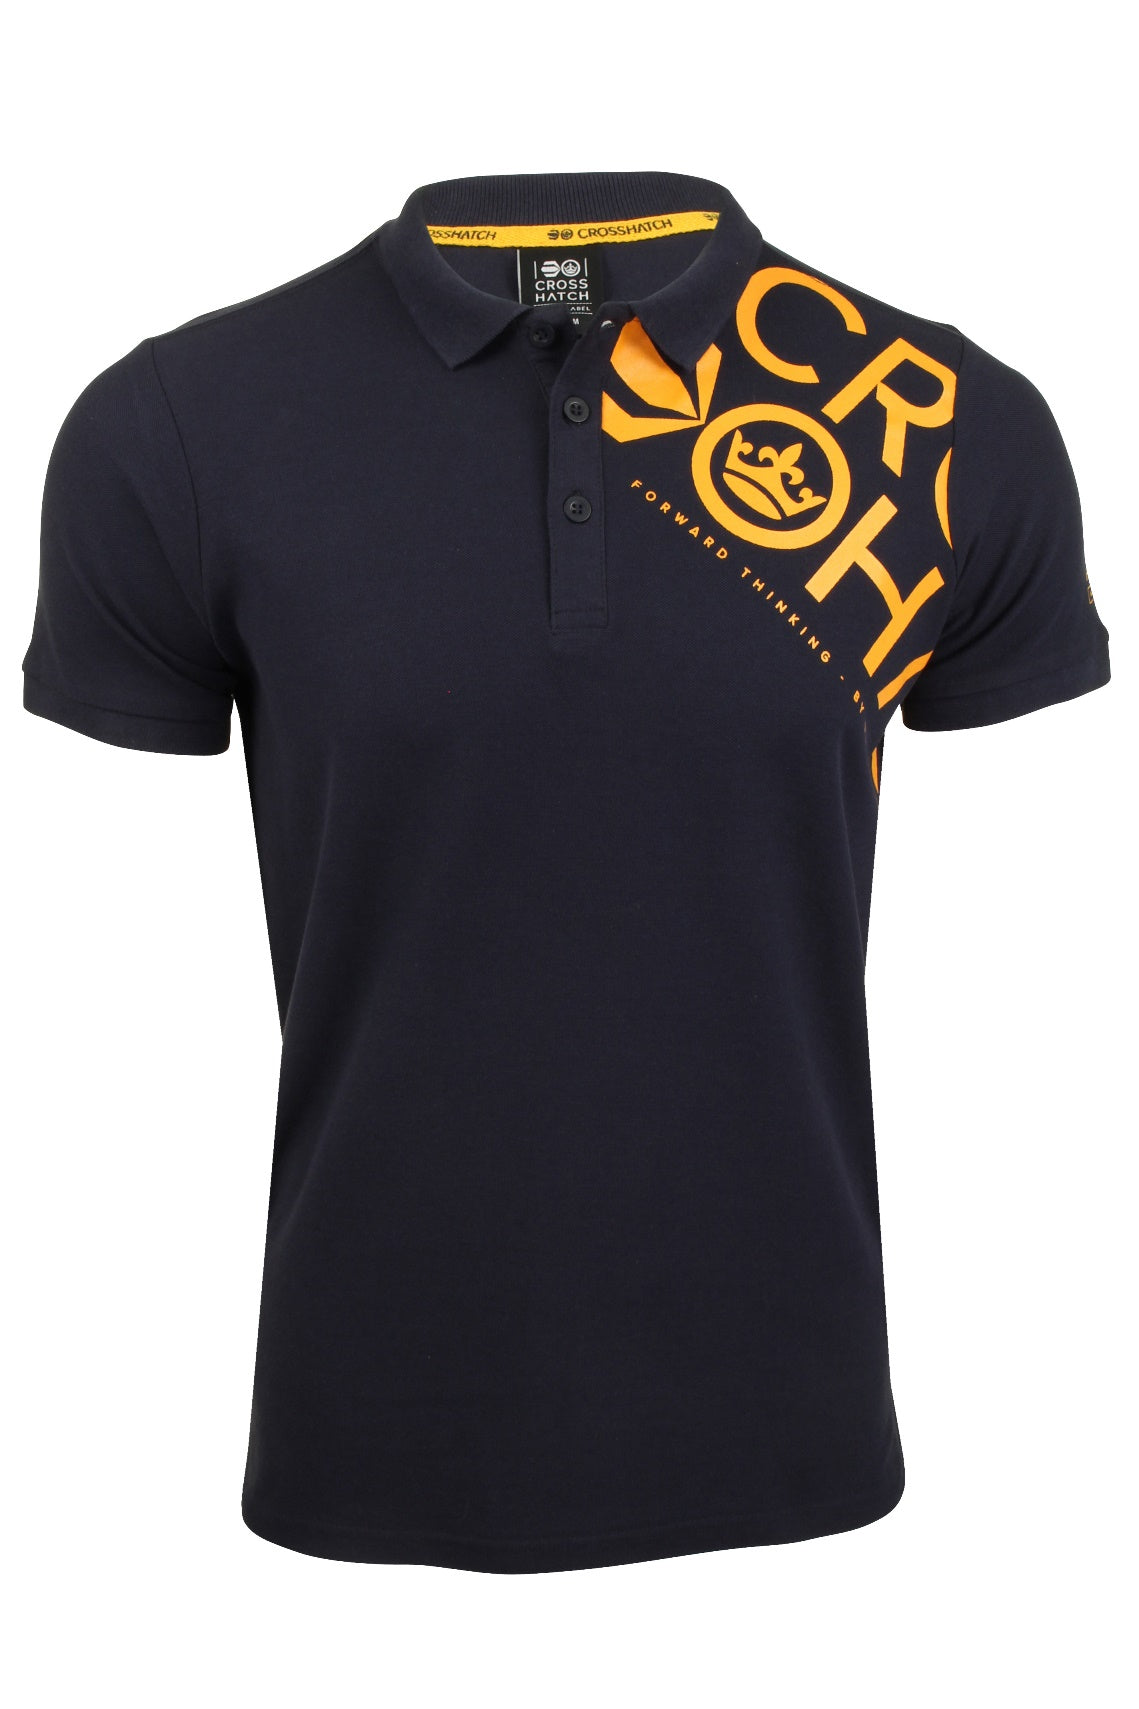 Mens Polo T-Shirt by Crosshatch 'Tennyson' Short Sleeved-2